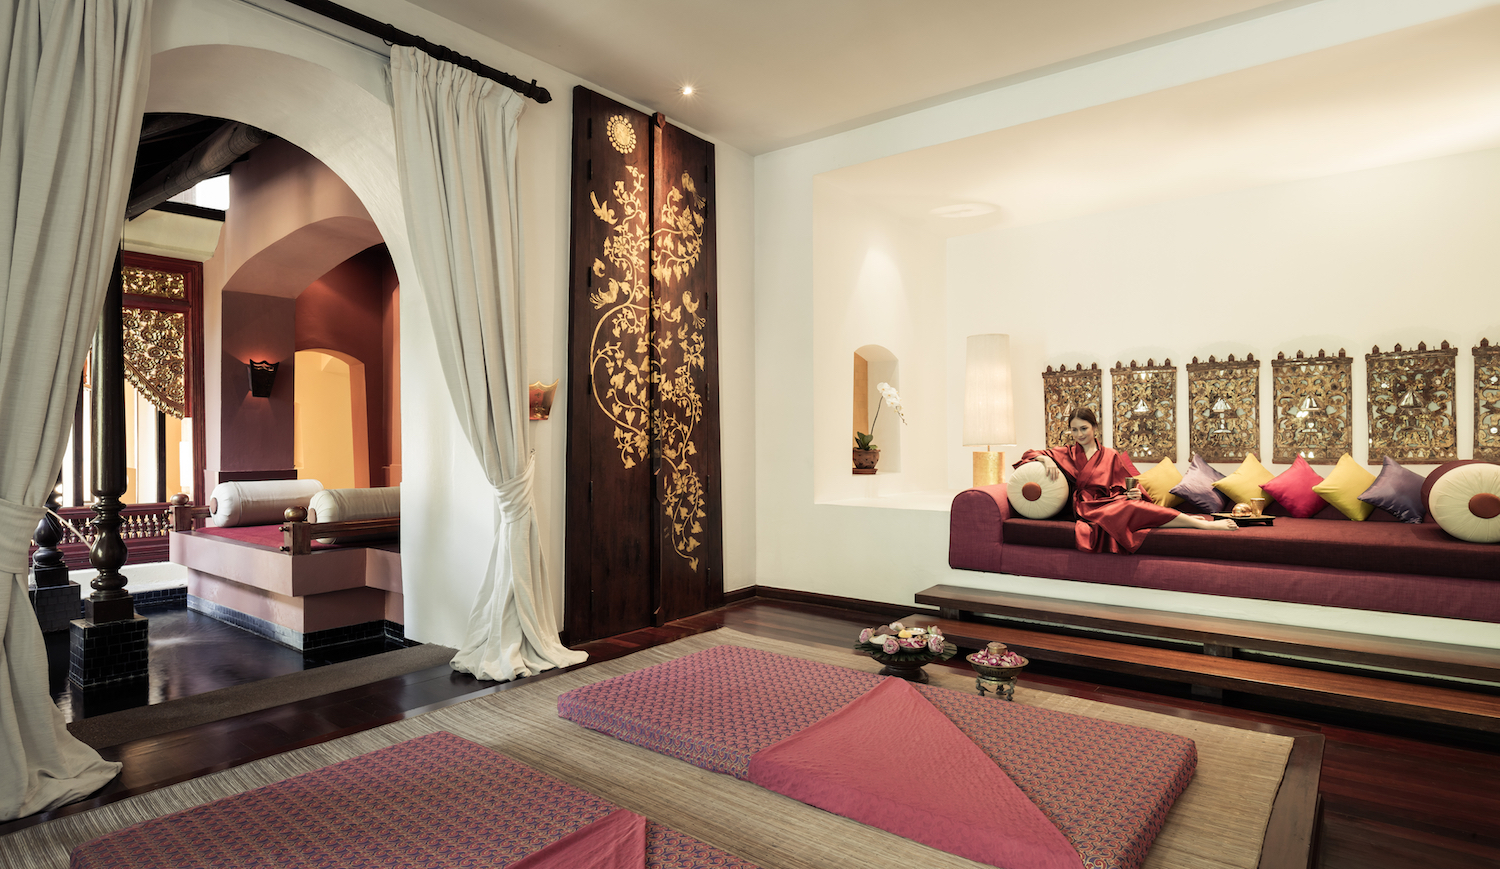 Spa Review: Wara Cheeva Spa Offers A Haven of Well-Being